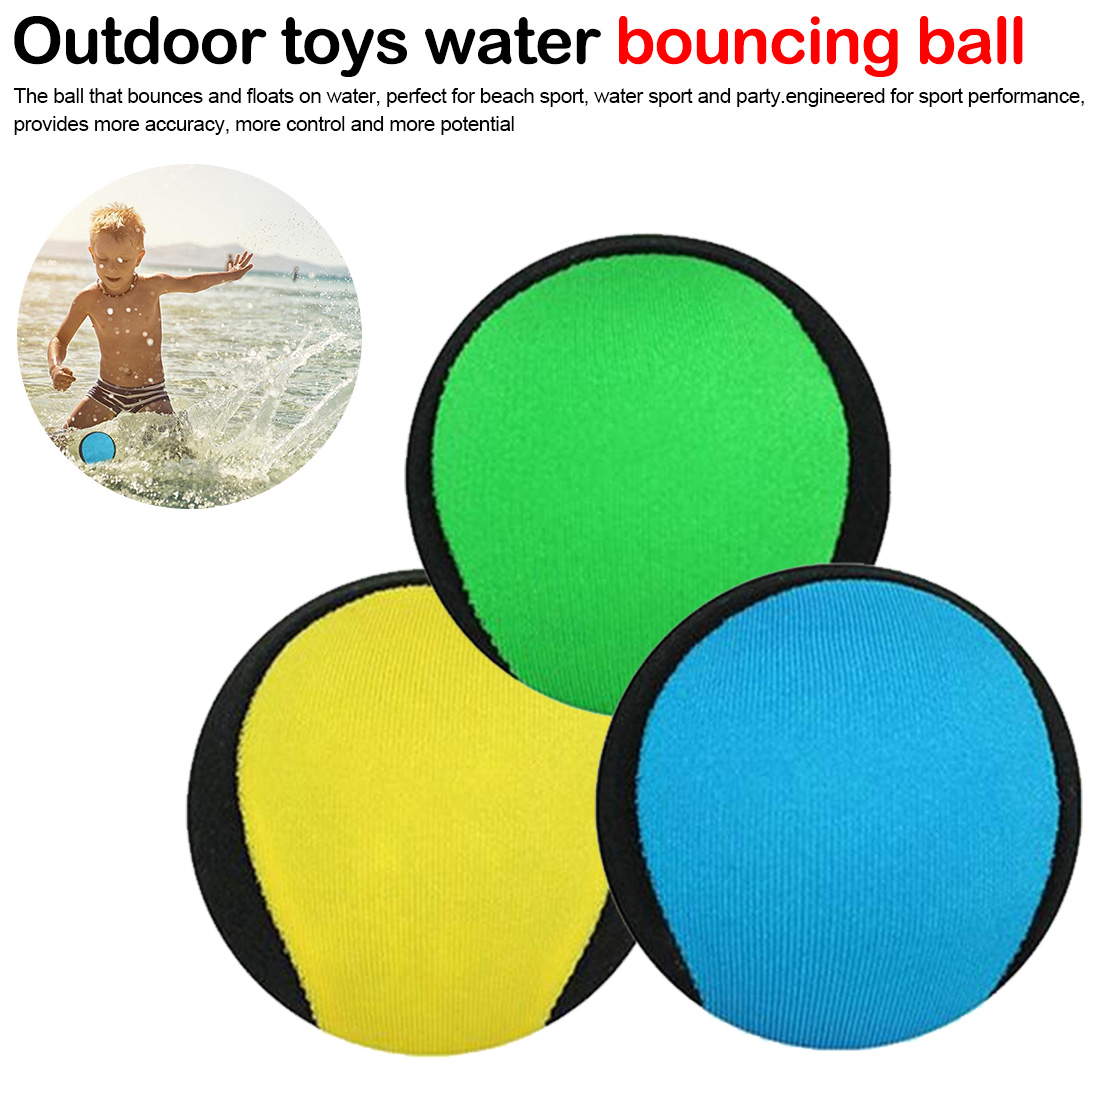 Outdoor Toys Water Bouncing Ball Pool Play Beach Ball Skips On Water Game Sports Toy For Swimming Pool Kids Adult